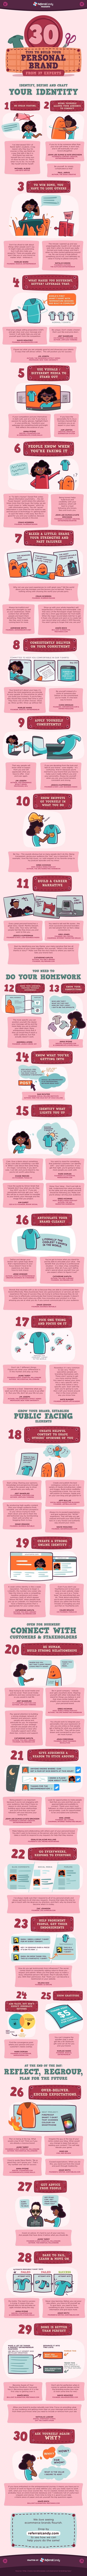 30 Best Tips to Build Your Personal Brand from the Experts #infographic | MarketingHits | Scoop.it